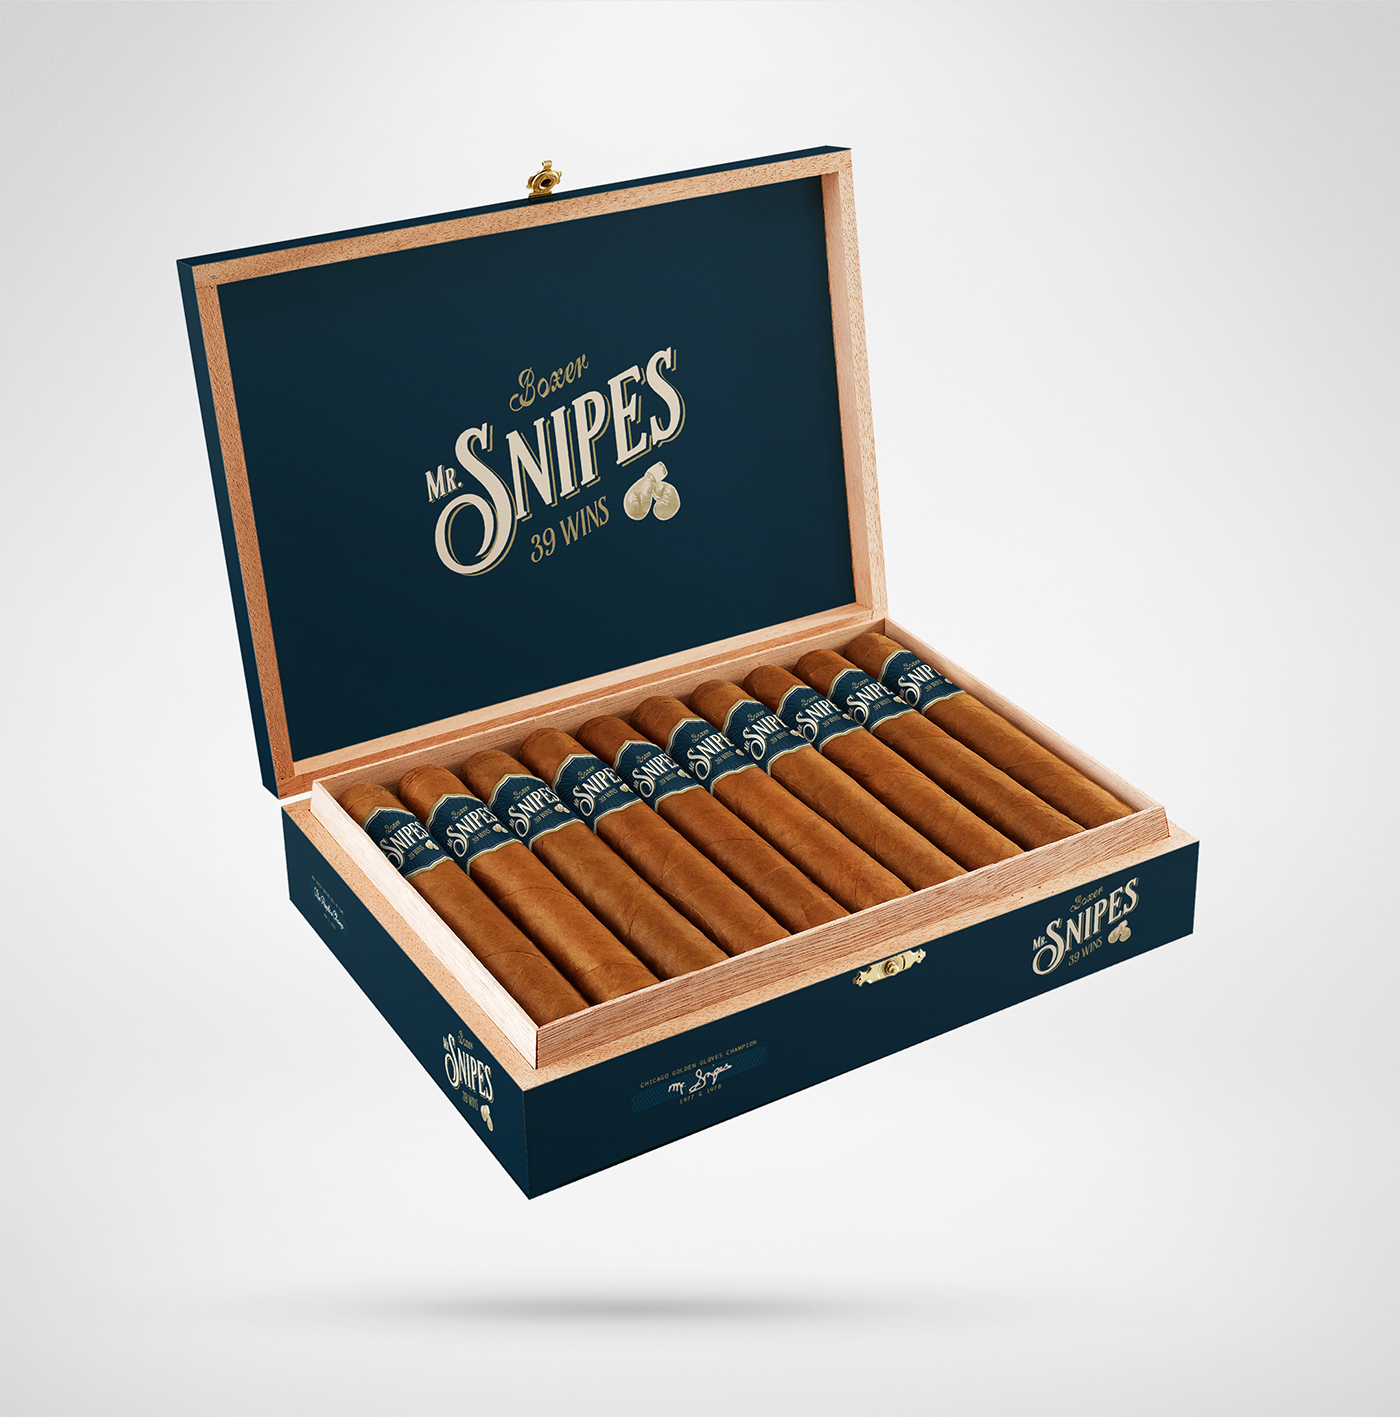 Mr. Snipes Cigars - Open Box